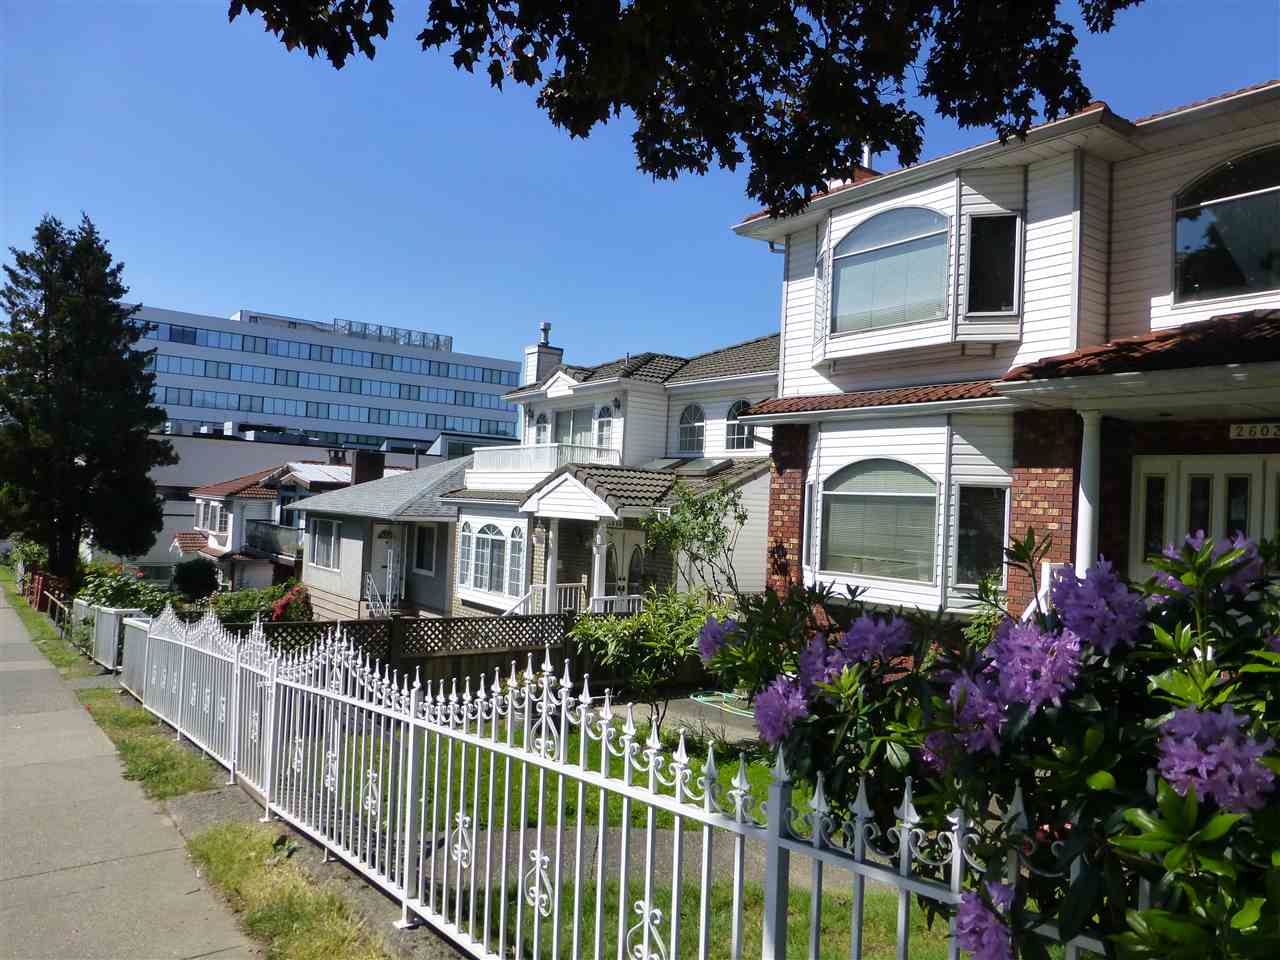 Photo 3: 2655 RENFREW Street in Vancouver: Renfrew VE House for sale (Vancouver East)  : MLS® # R2067647